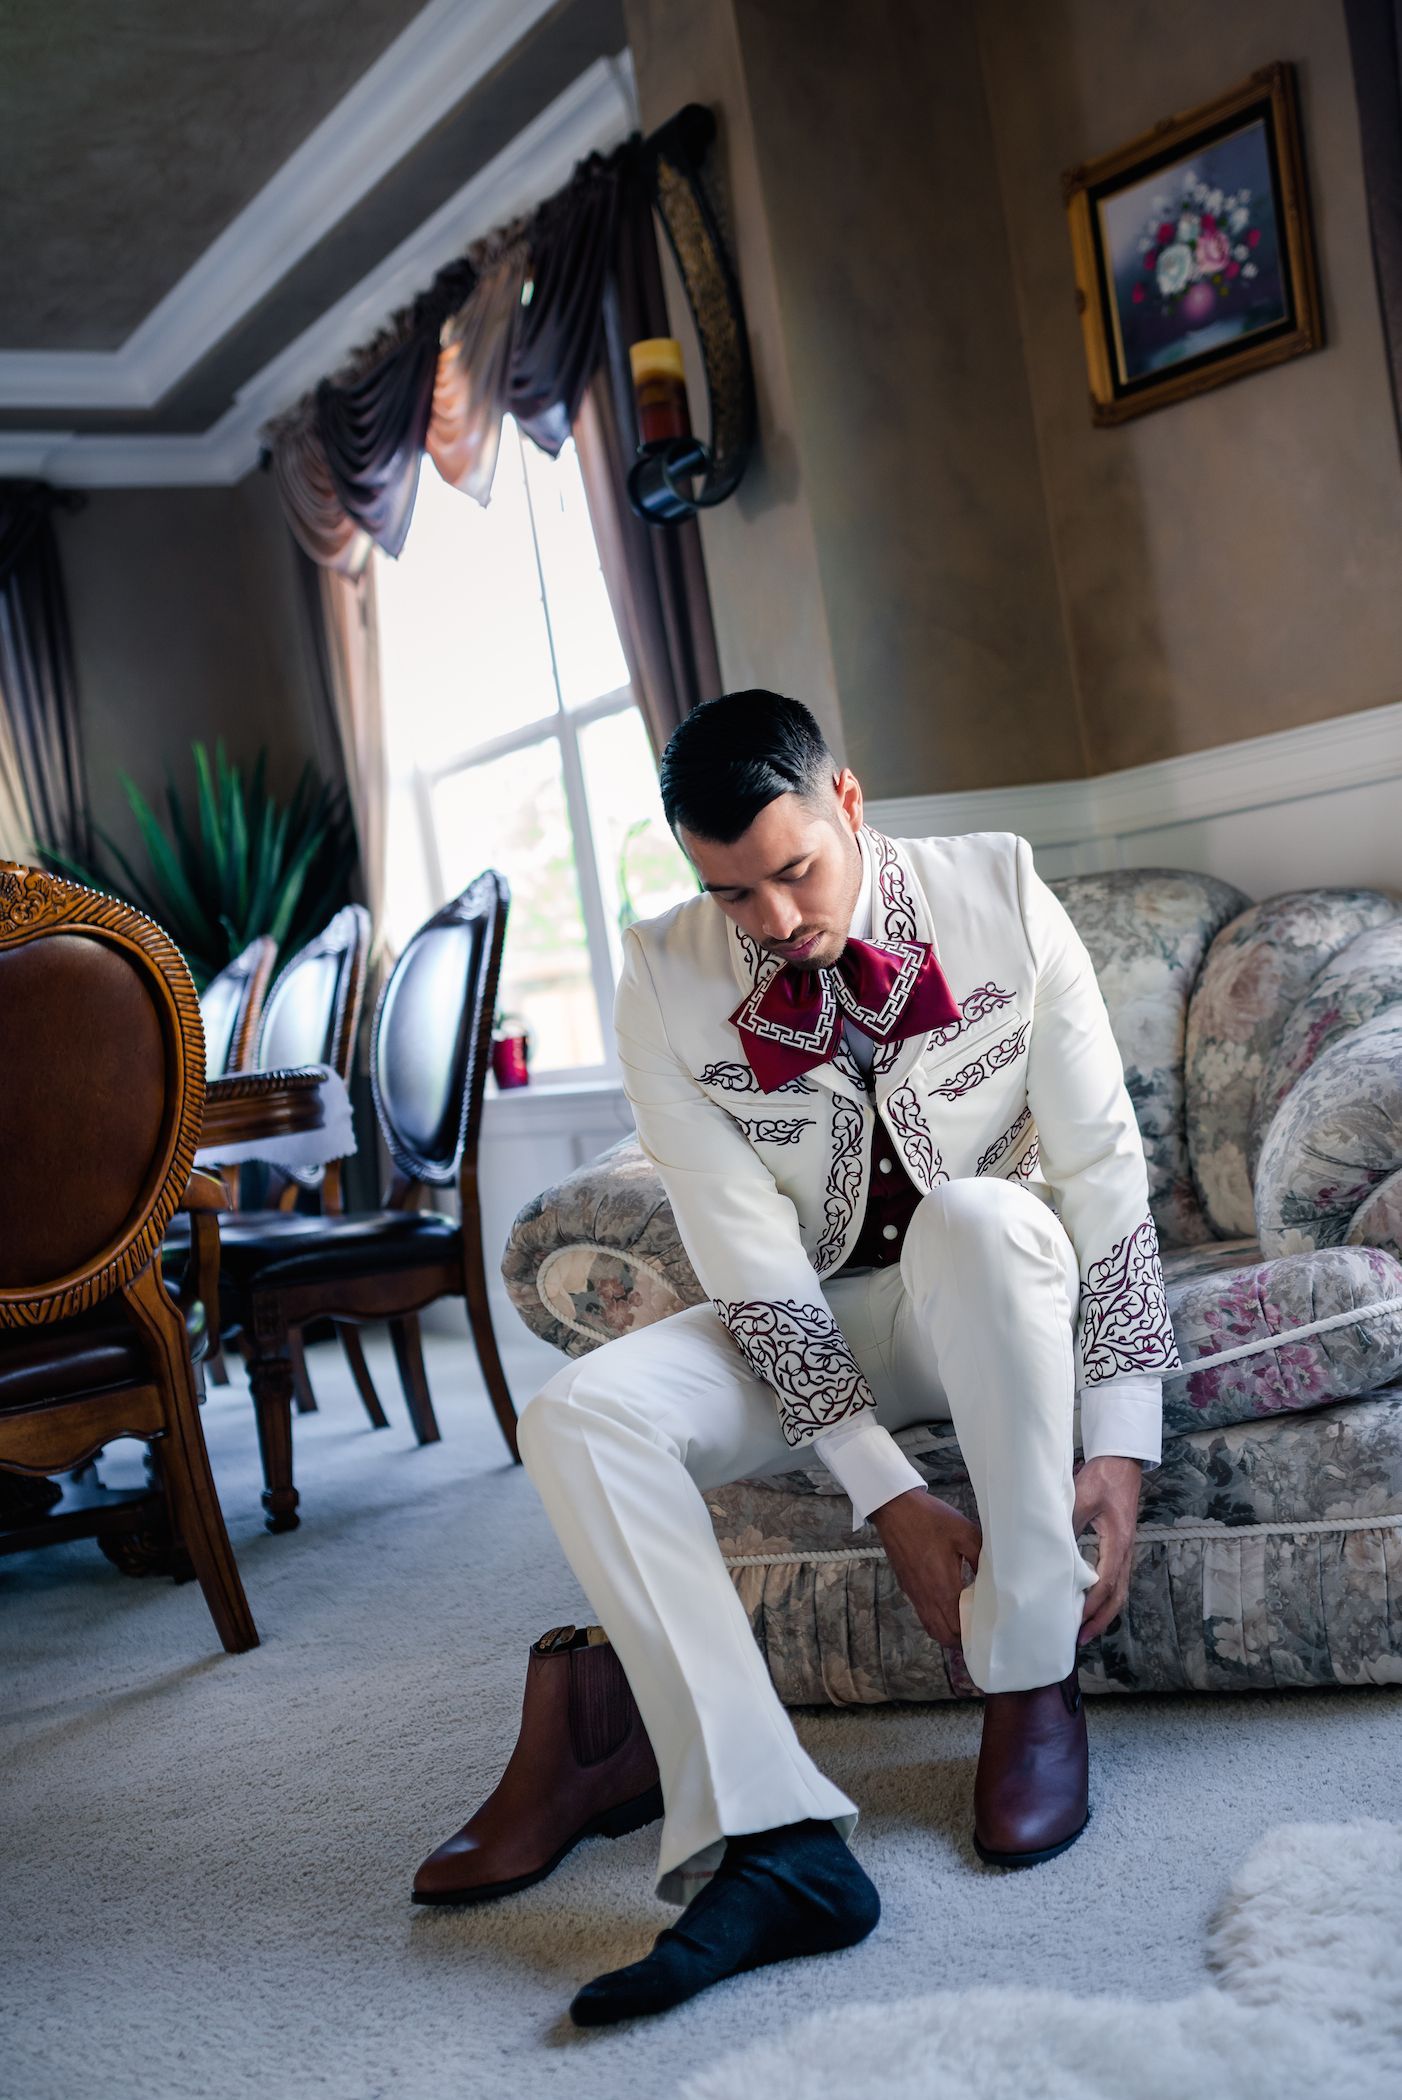 Groom Almost Ready Weddingparty Wedding Charro Suit Mens White Burgundy Pattern Design Traditional Mexican